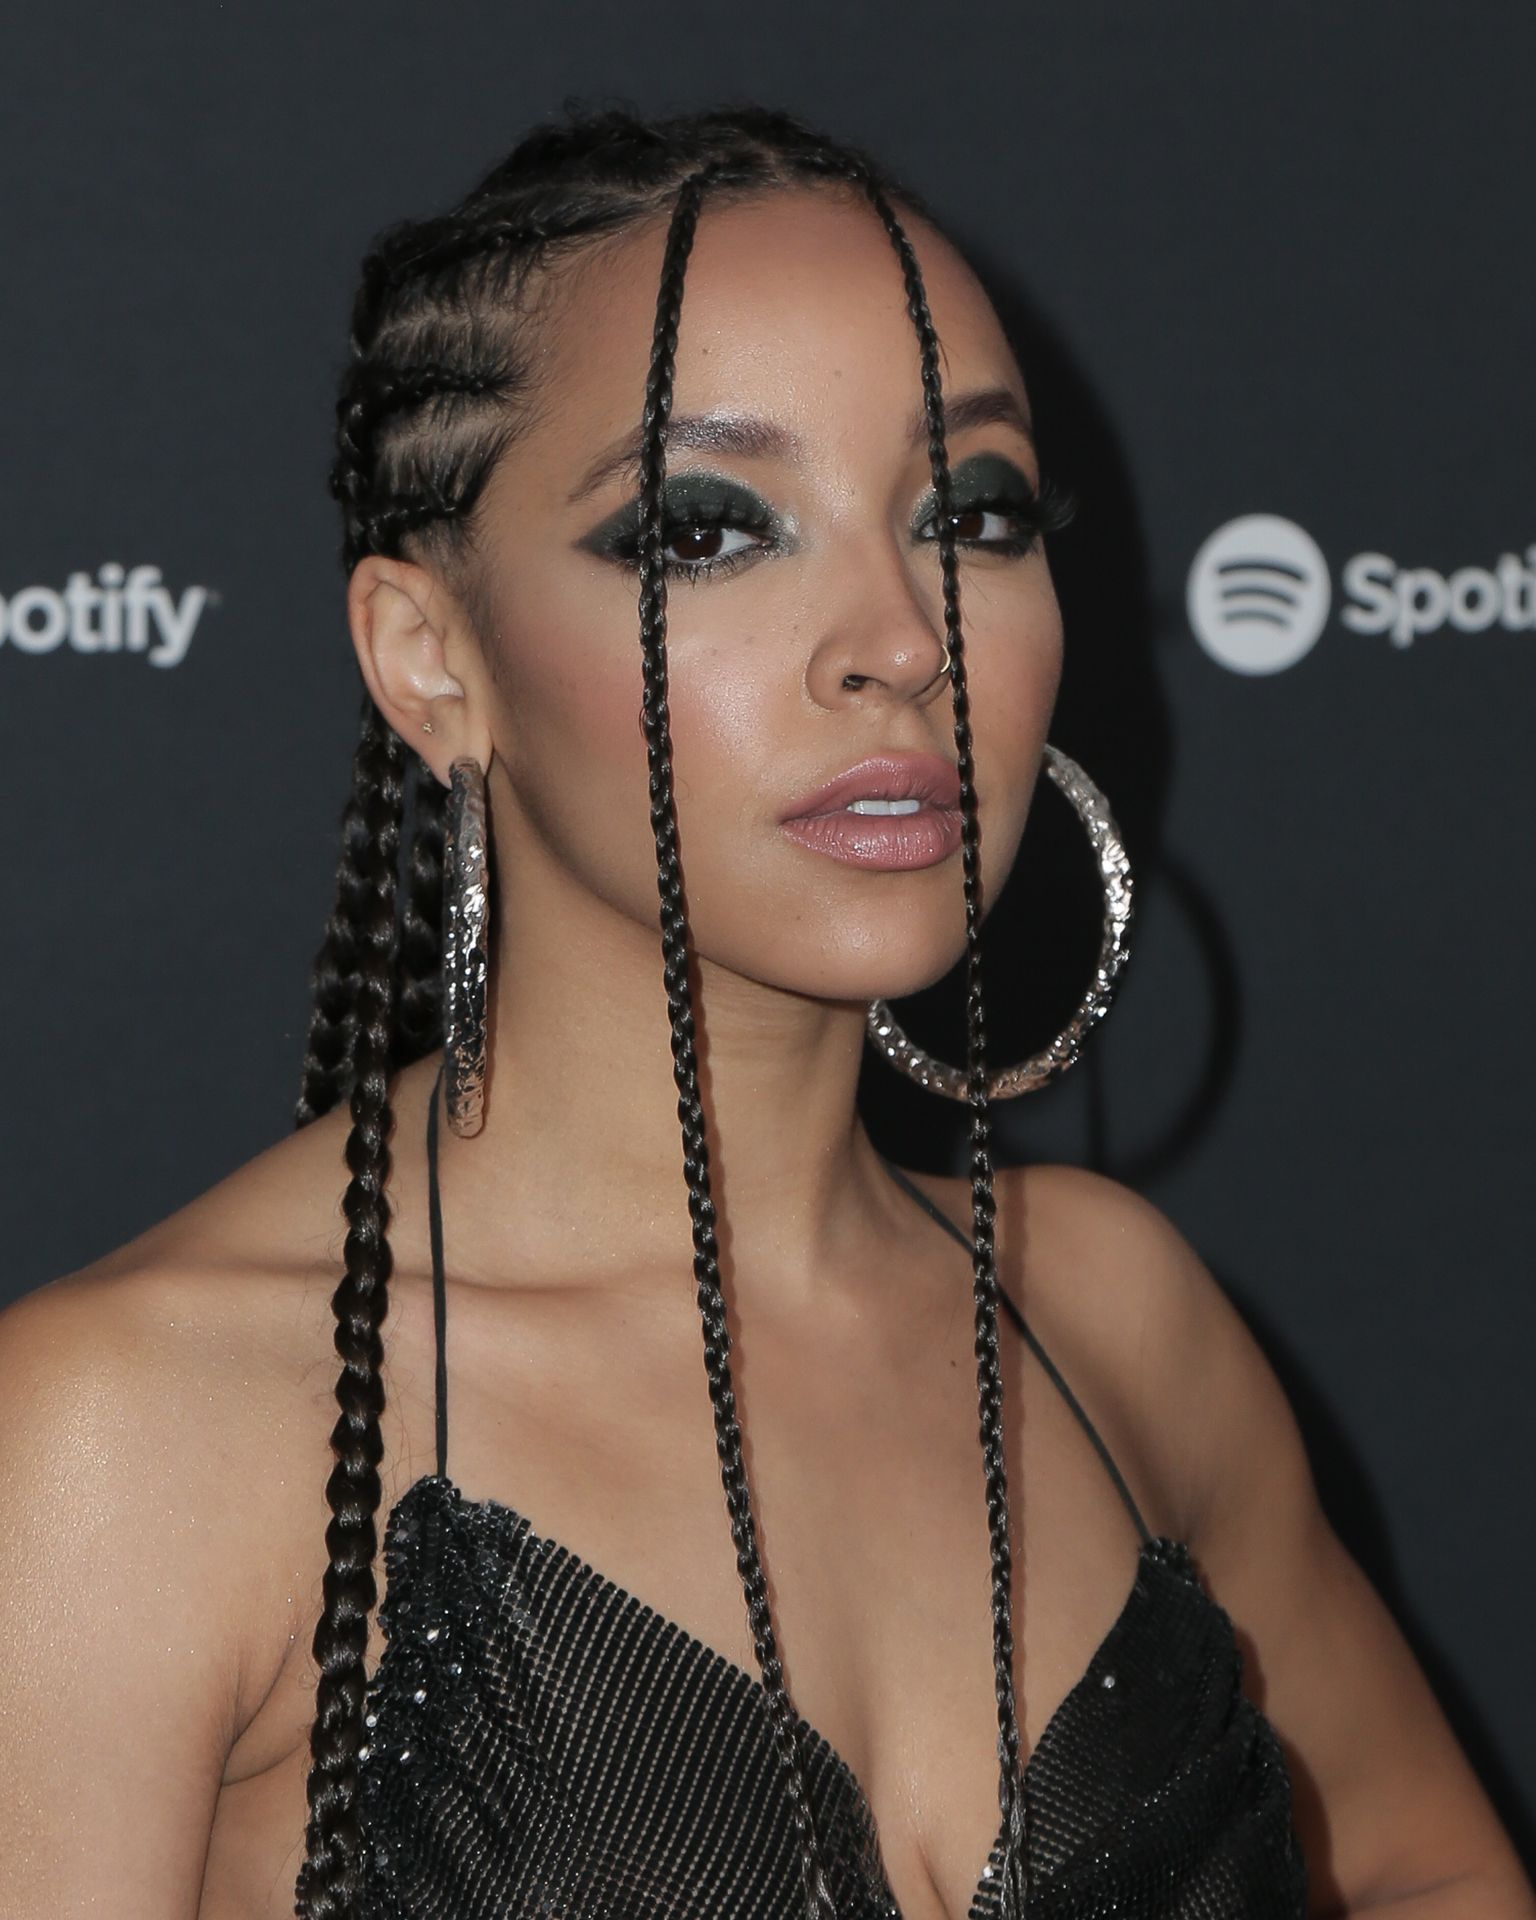 Tinashe Flaunts Her Tits At The Spotify Best New Artist Party 0025